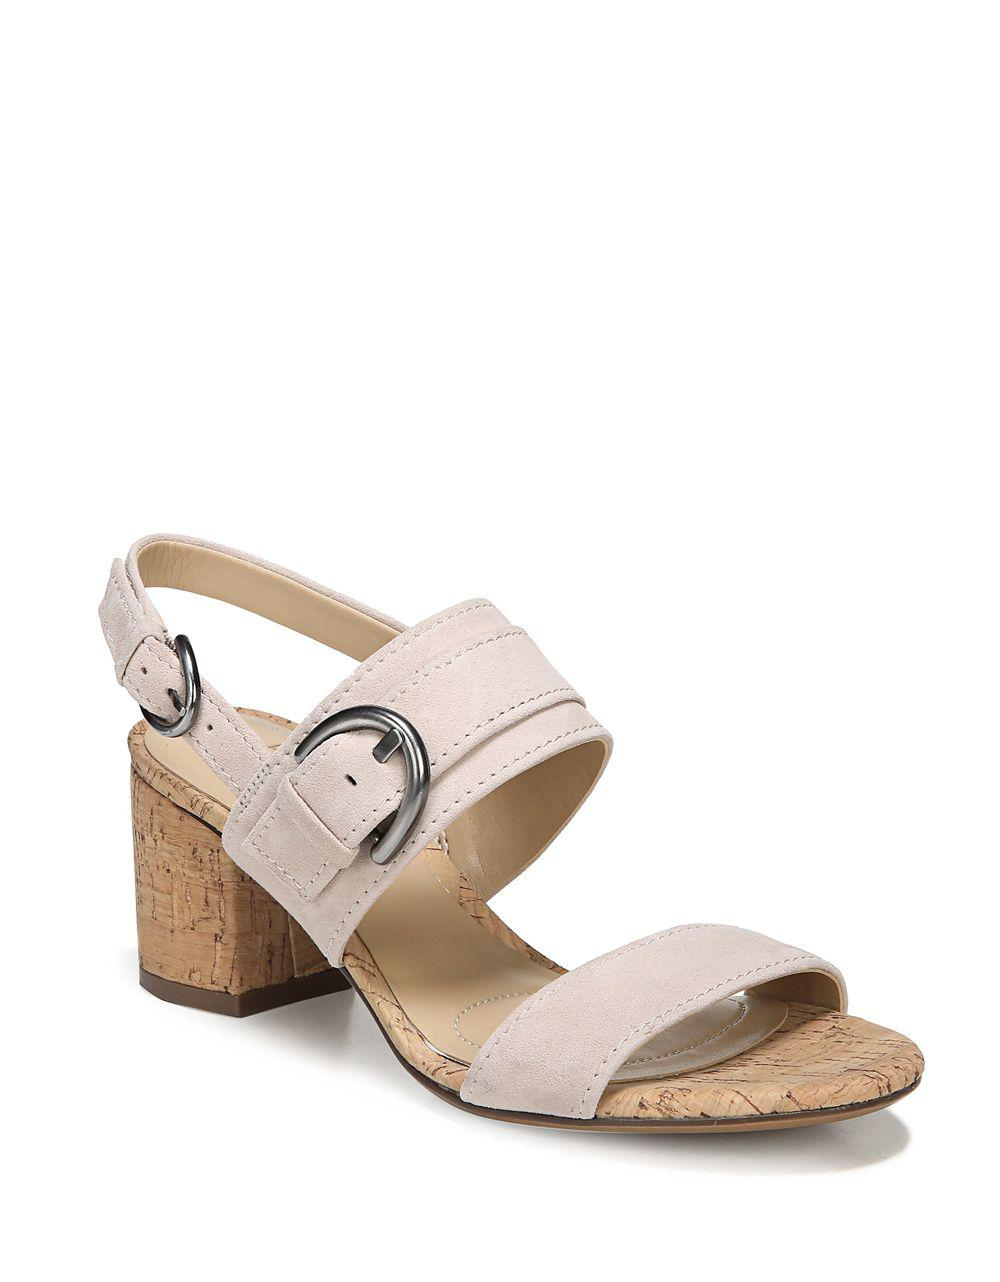 17a8ef7320 Lyst - Naturalizer Camden Kid Suede Slingback Sandals in Gray